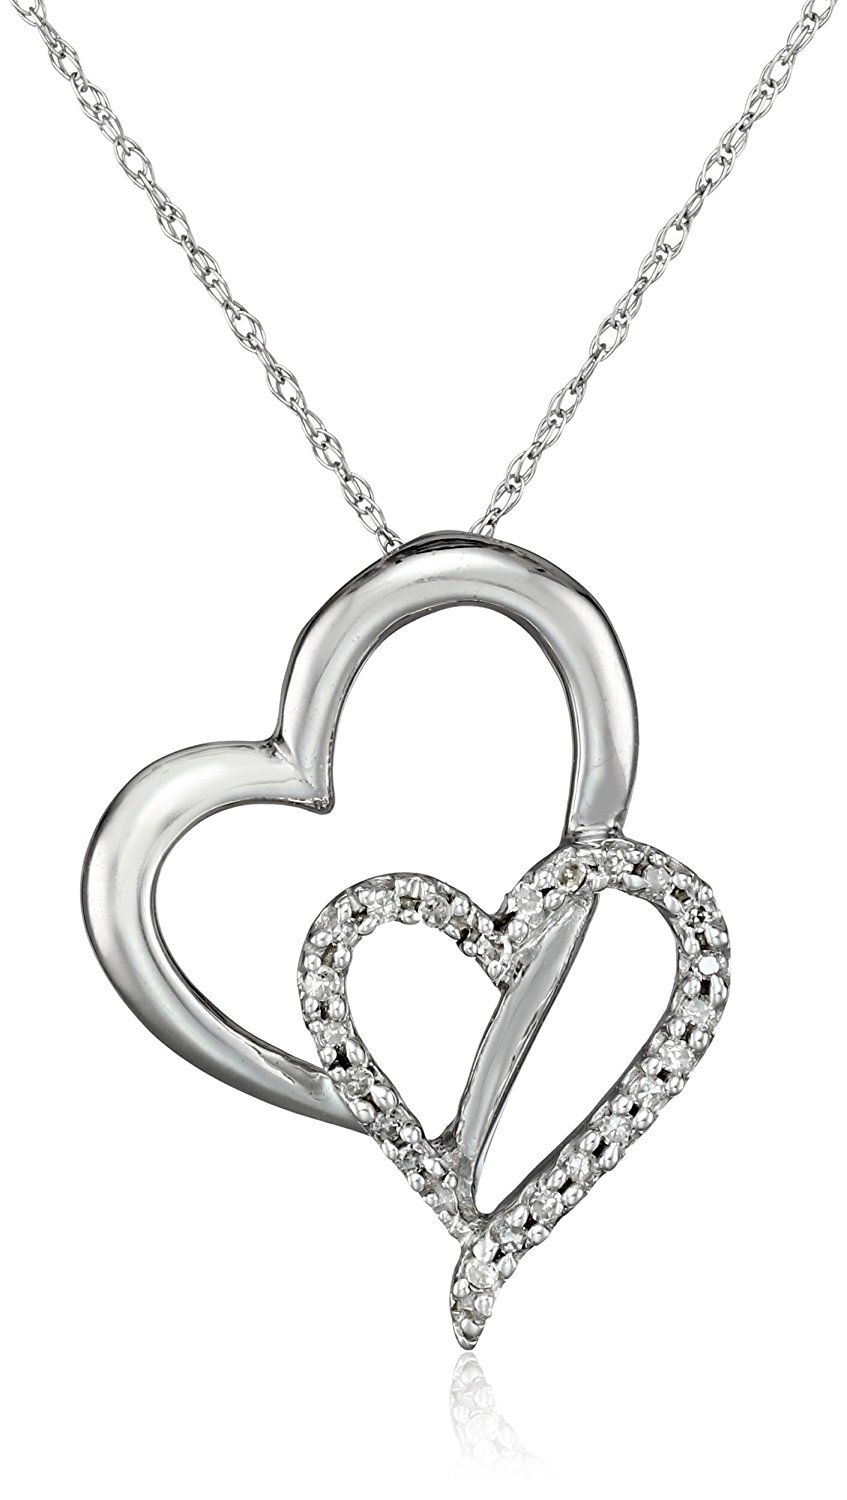 K white gold diamond double heart pendant necklace cttw